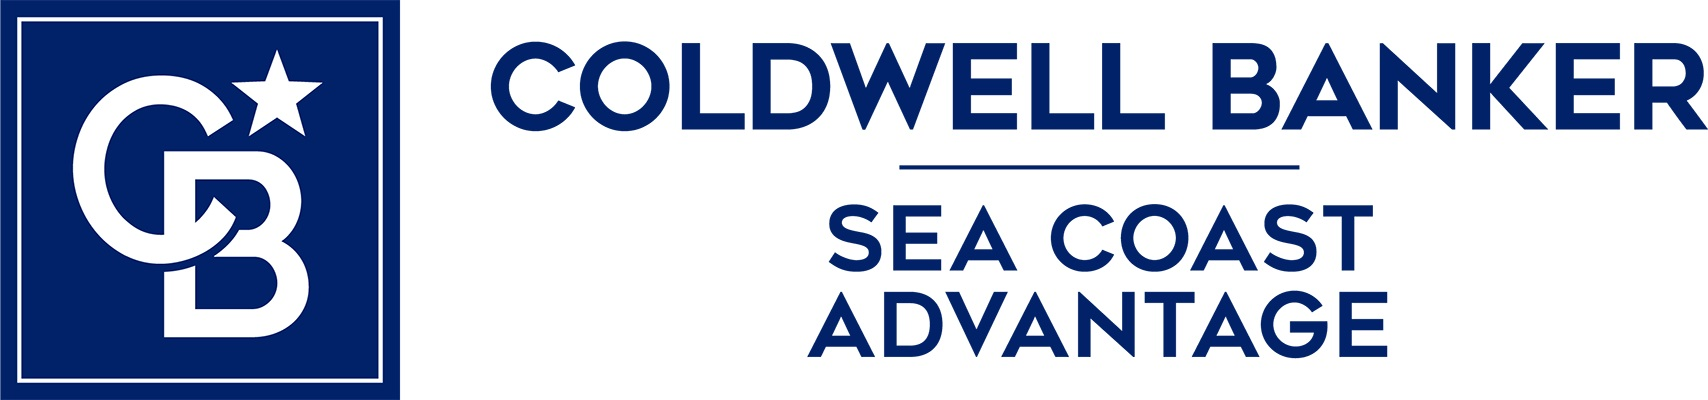 Chris Keiser - Coldwell Banker Sea Coast Advantage Realty Logo